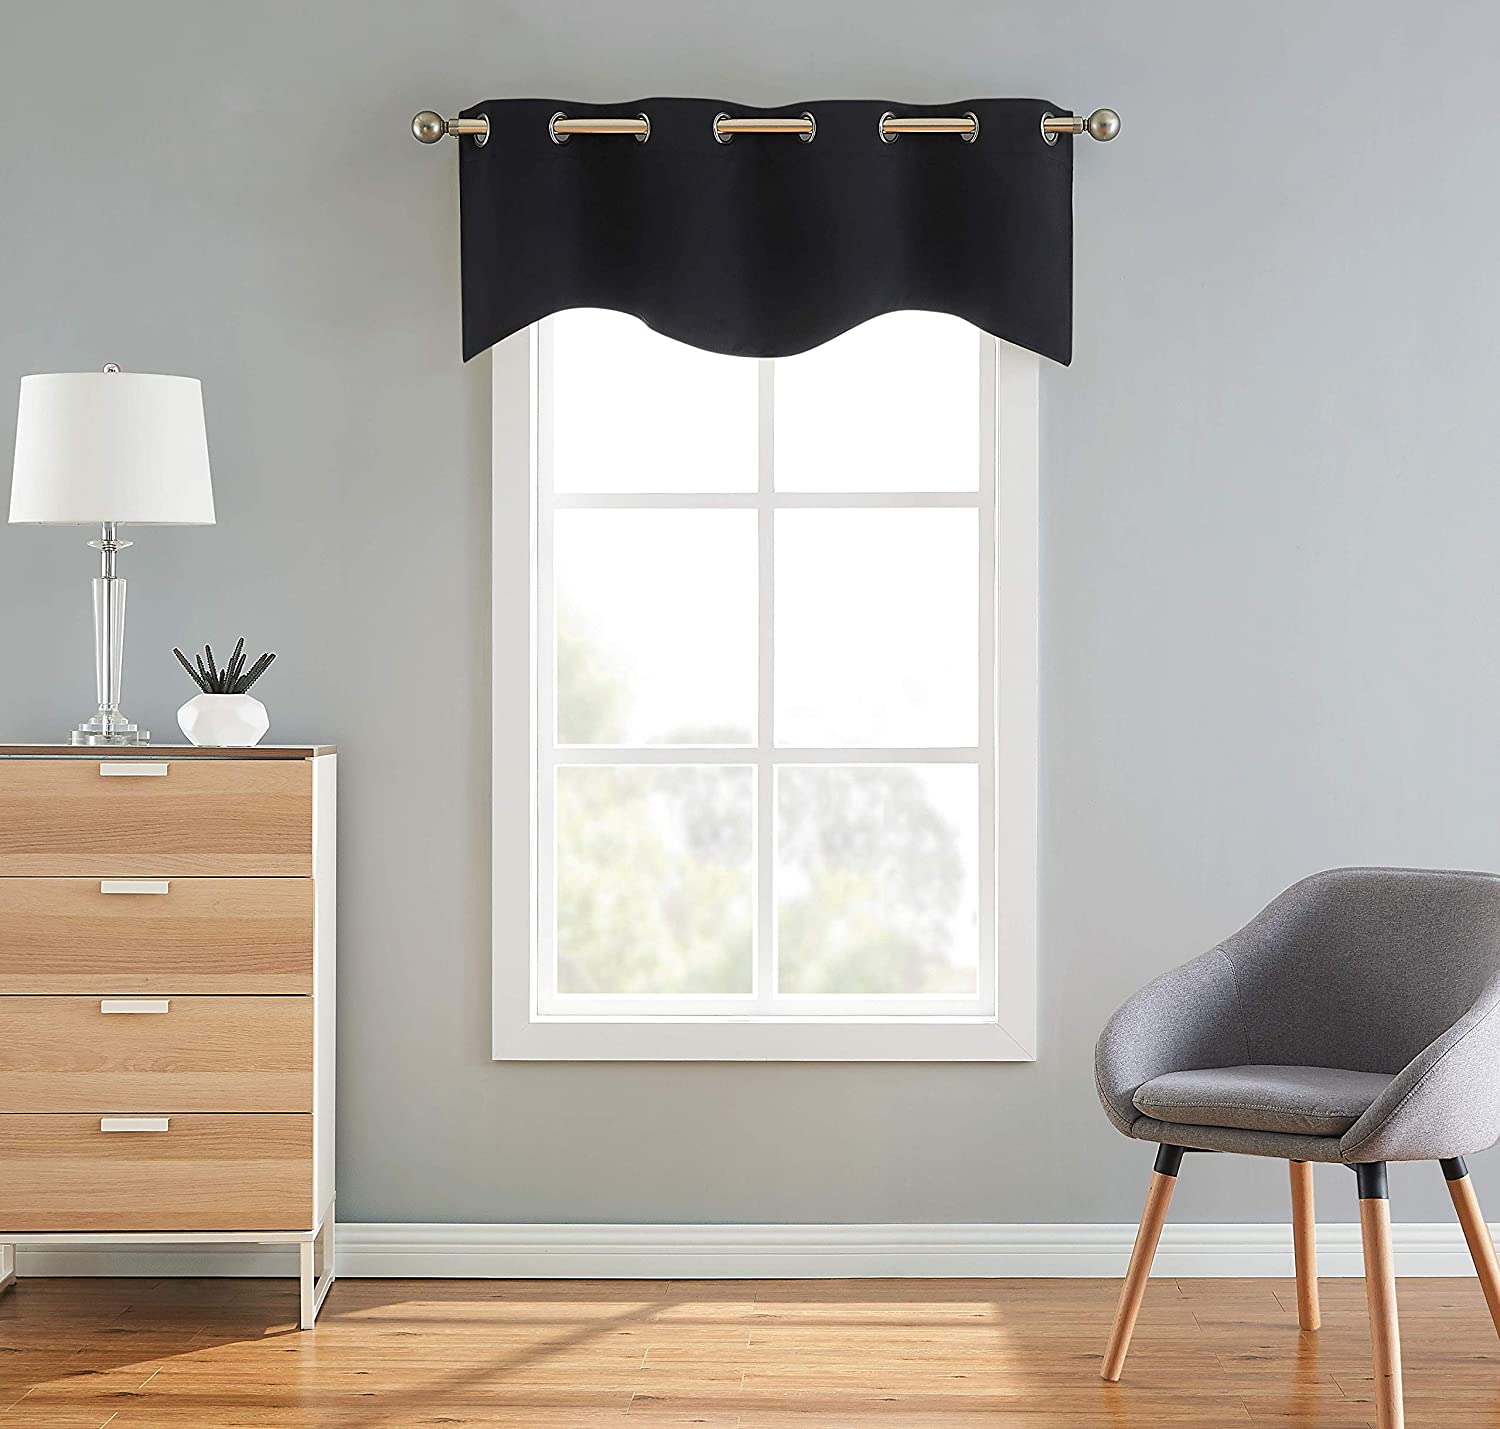 Linenzone Scalloped Valance Curtain Panel Premium Grommet Blackout Drape 54 Inch Wide X 18 Inches Long Solid Thermal Insulated Draperies 1 Scalloped Valance 54 X 18 Black Home Kitchen Amazon Com